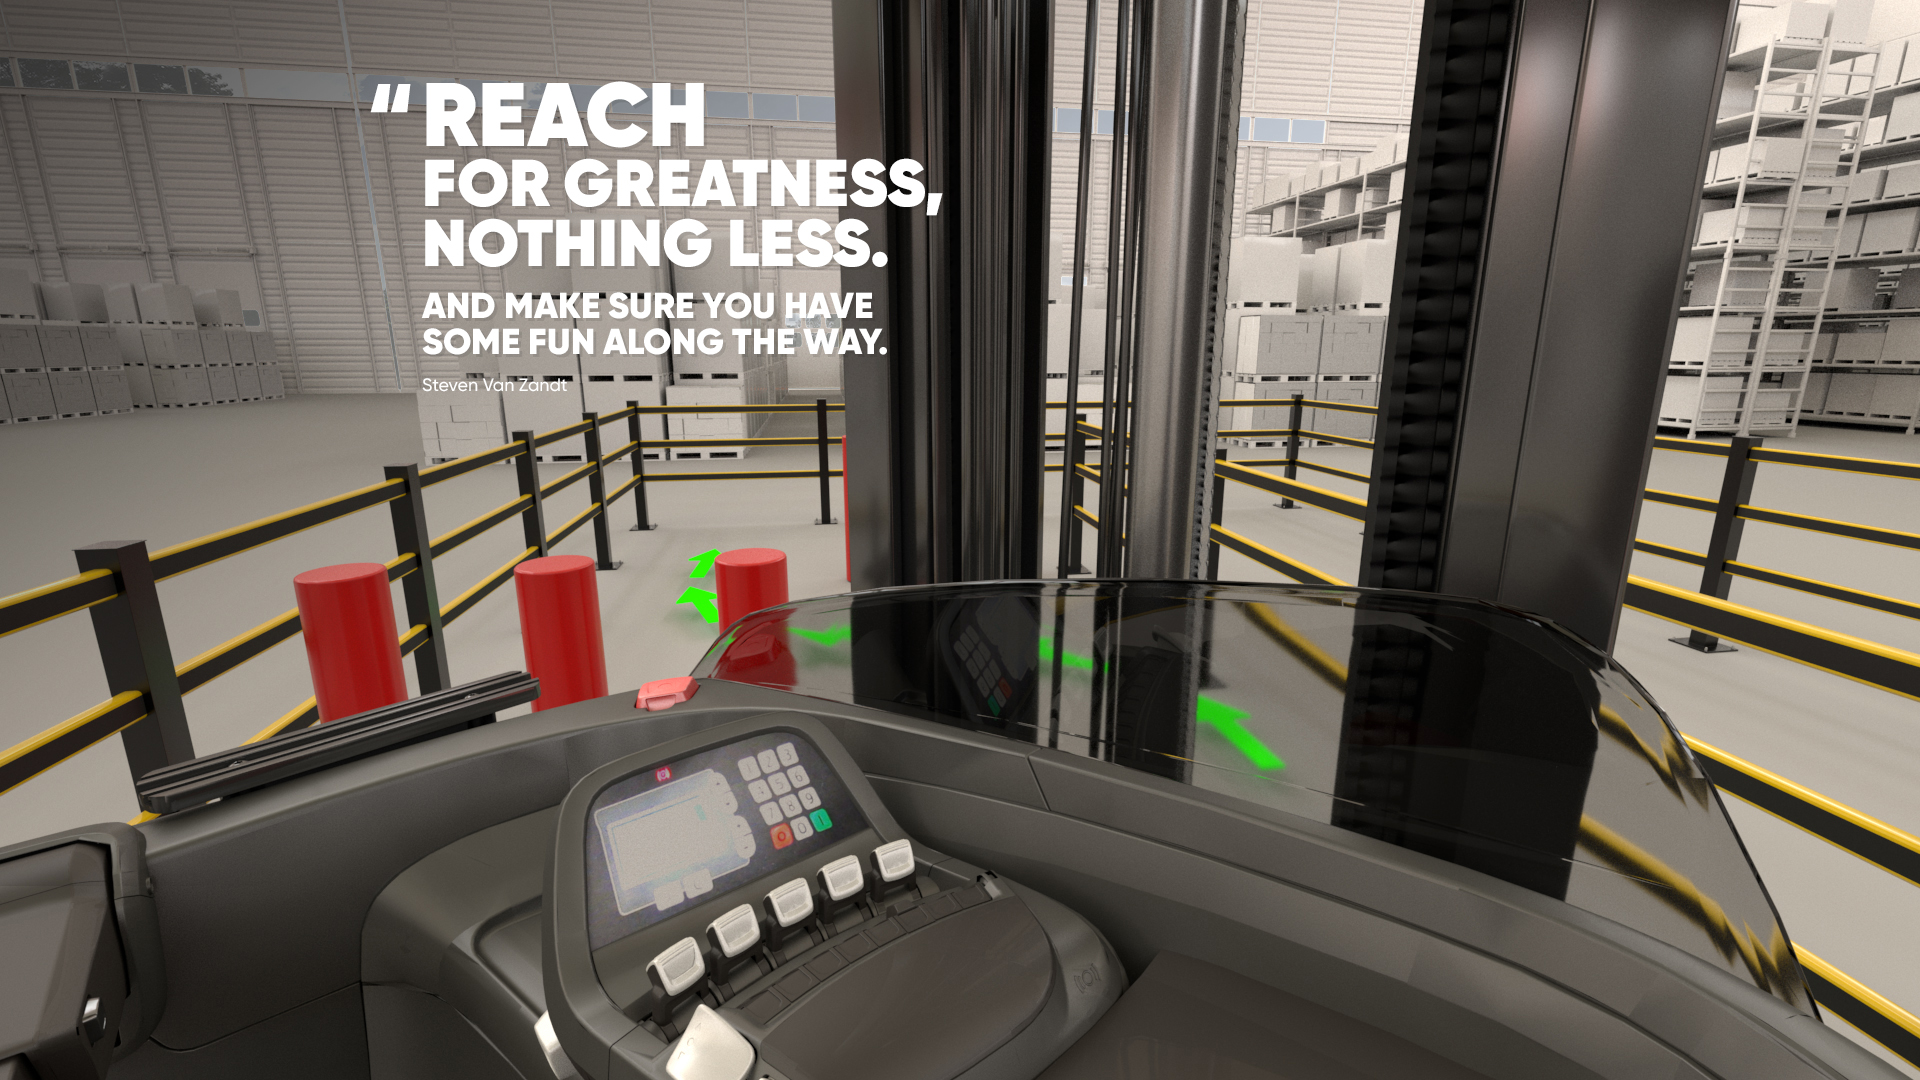 Reachtruck simulator virtual training